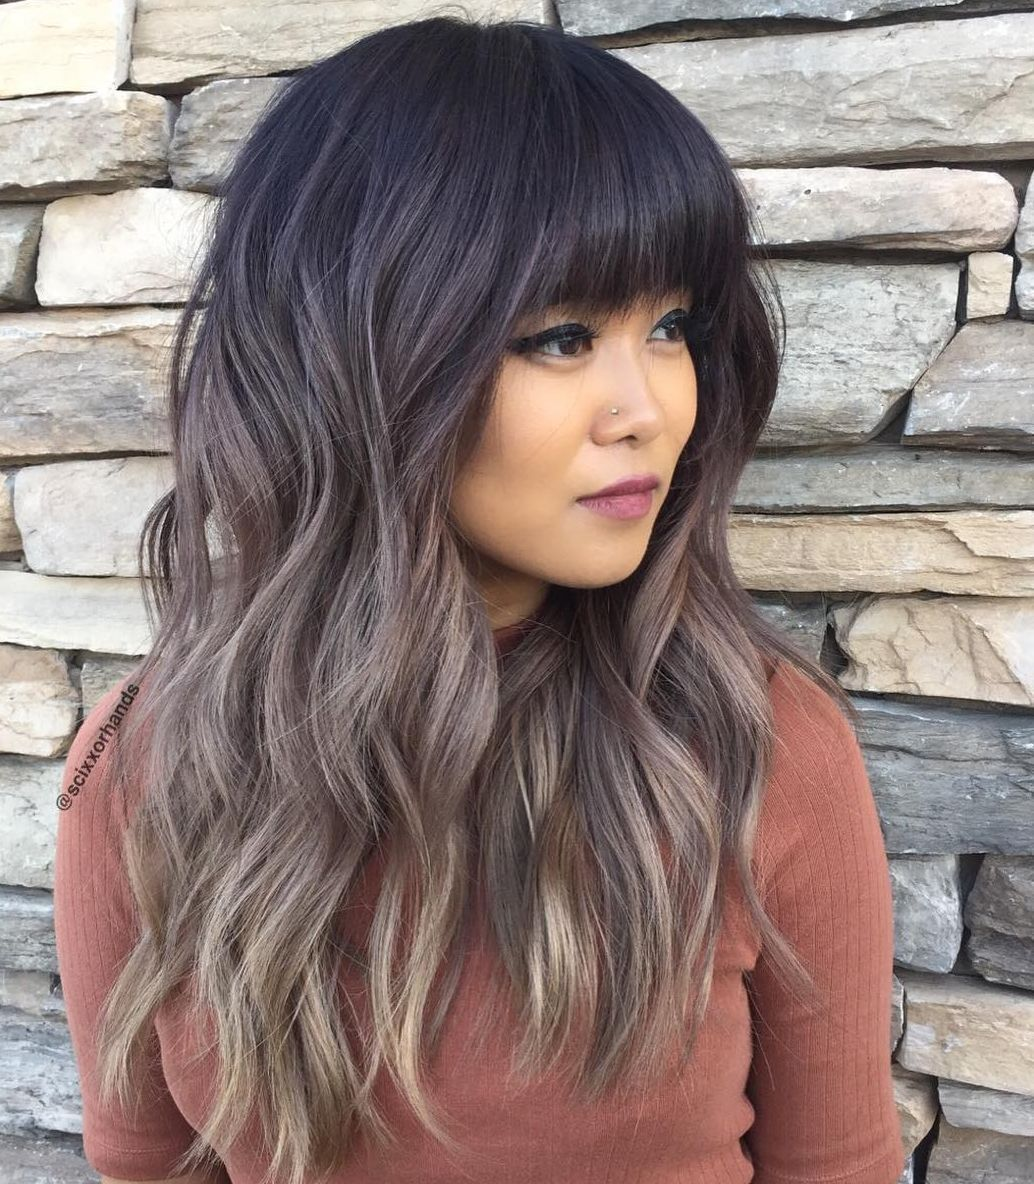 Ombre Hairstyles: Medium Haircut with Blunt Bangs recommend